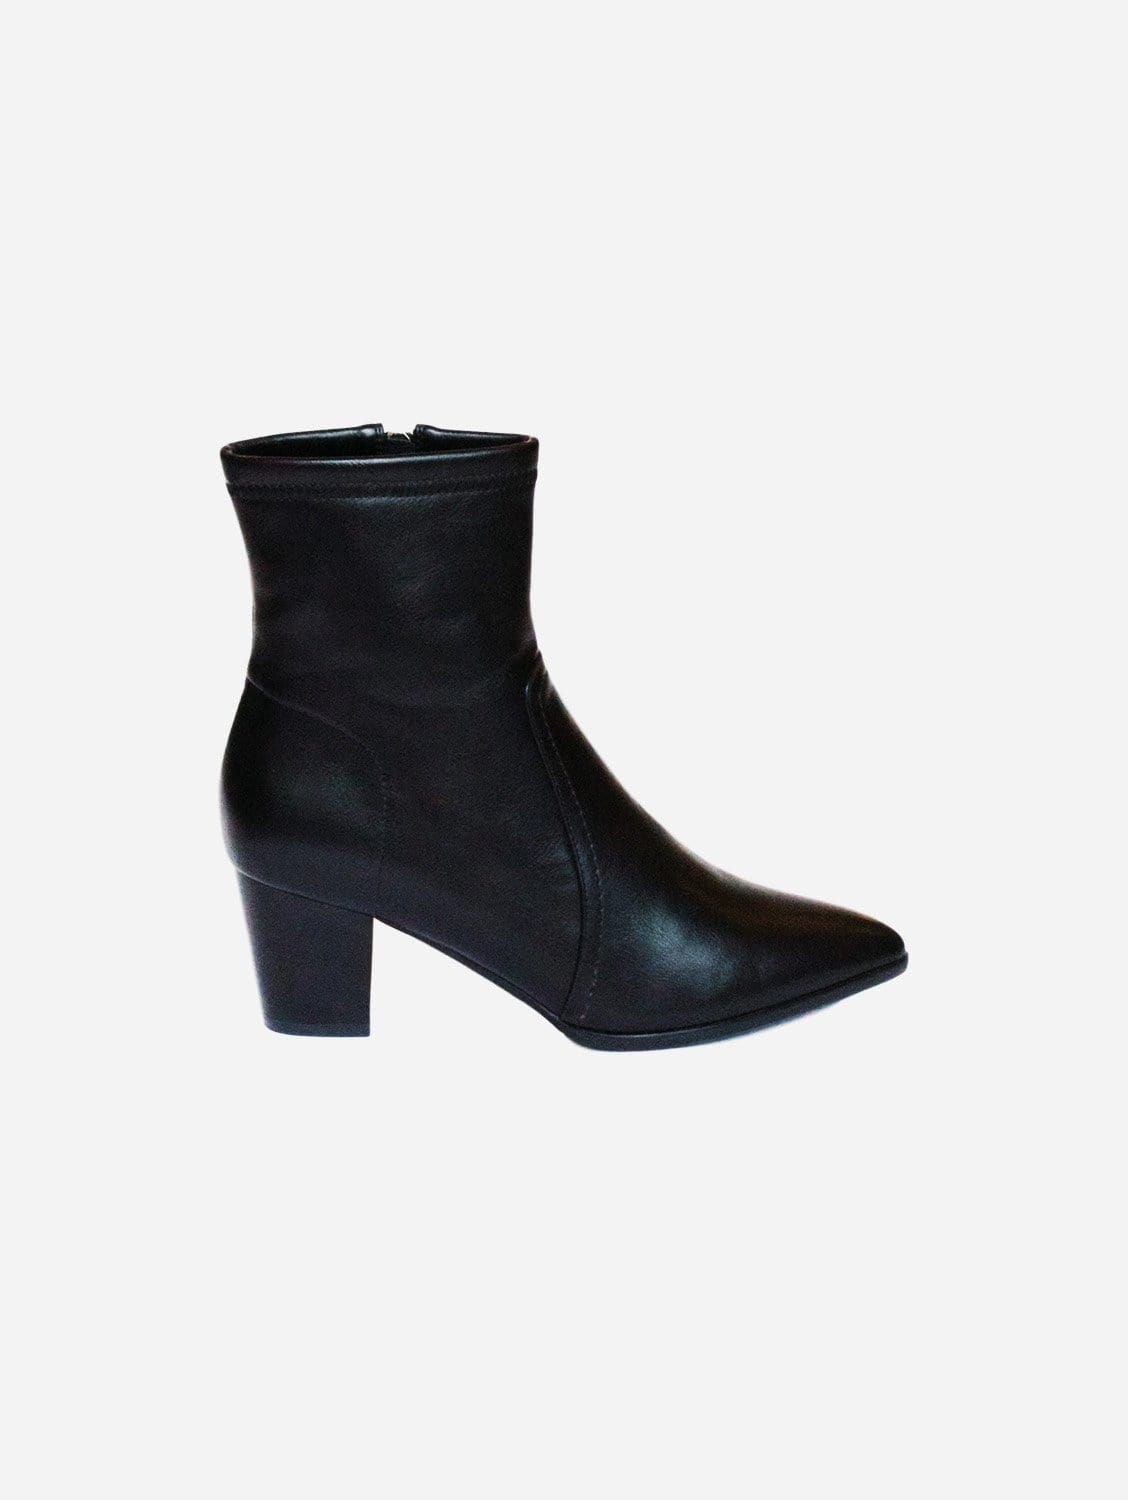 Kali Cowboy Style Up-Cycled Vegan Leather Boot | Black